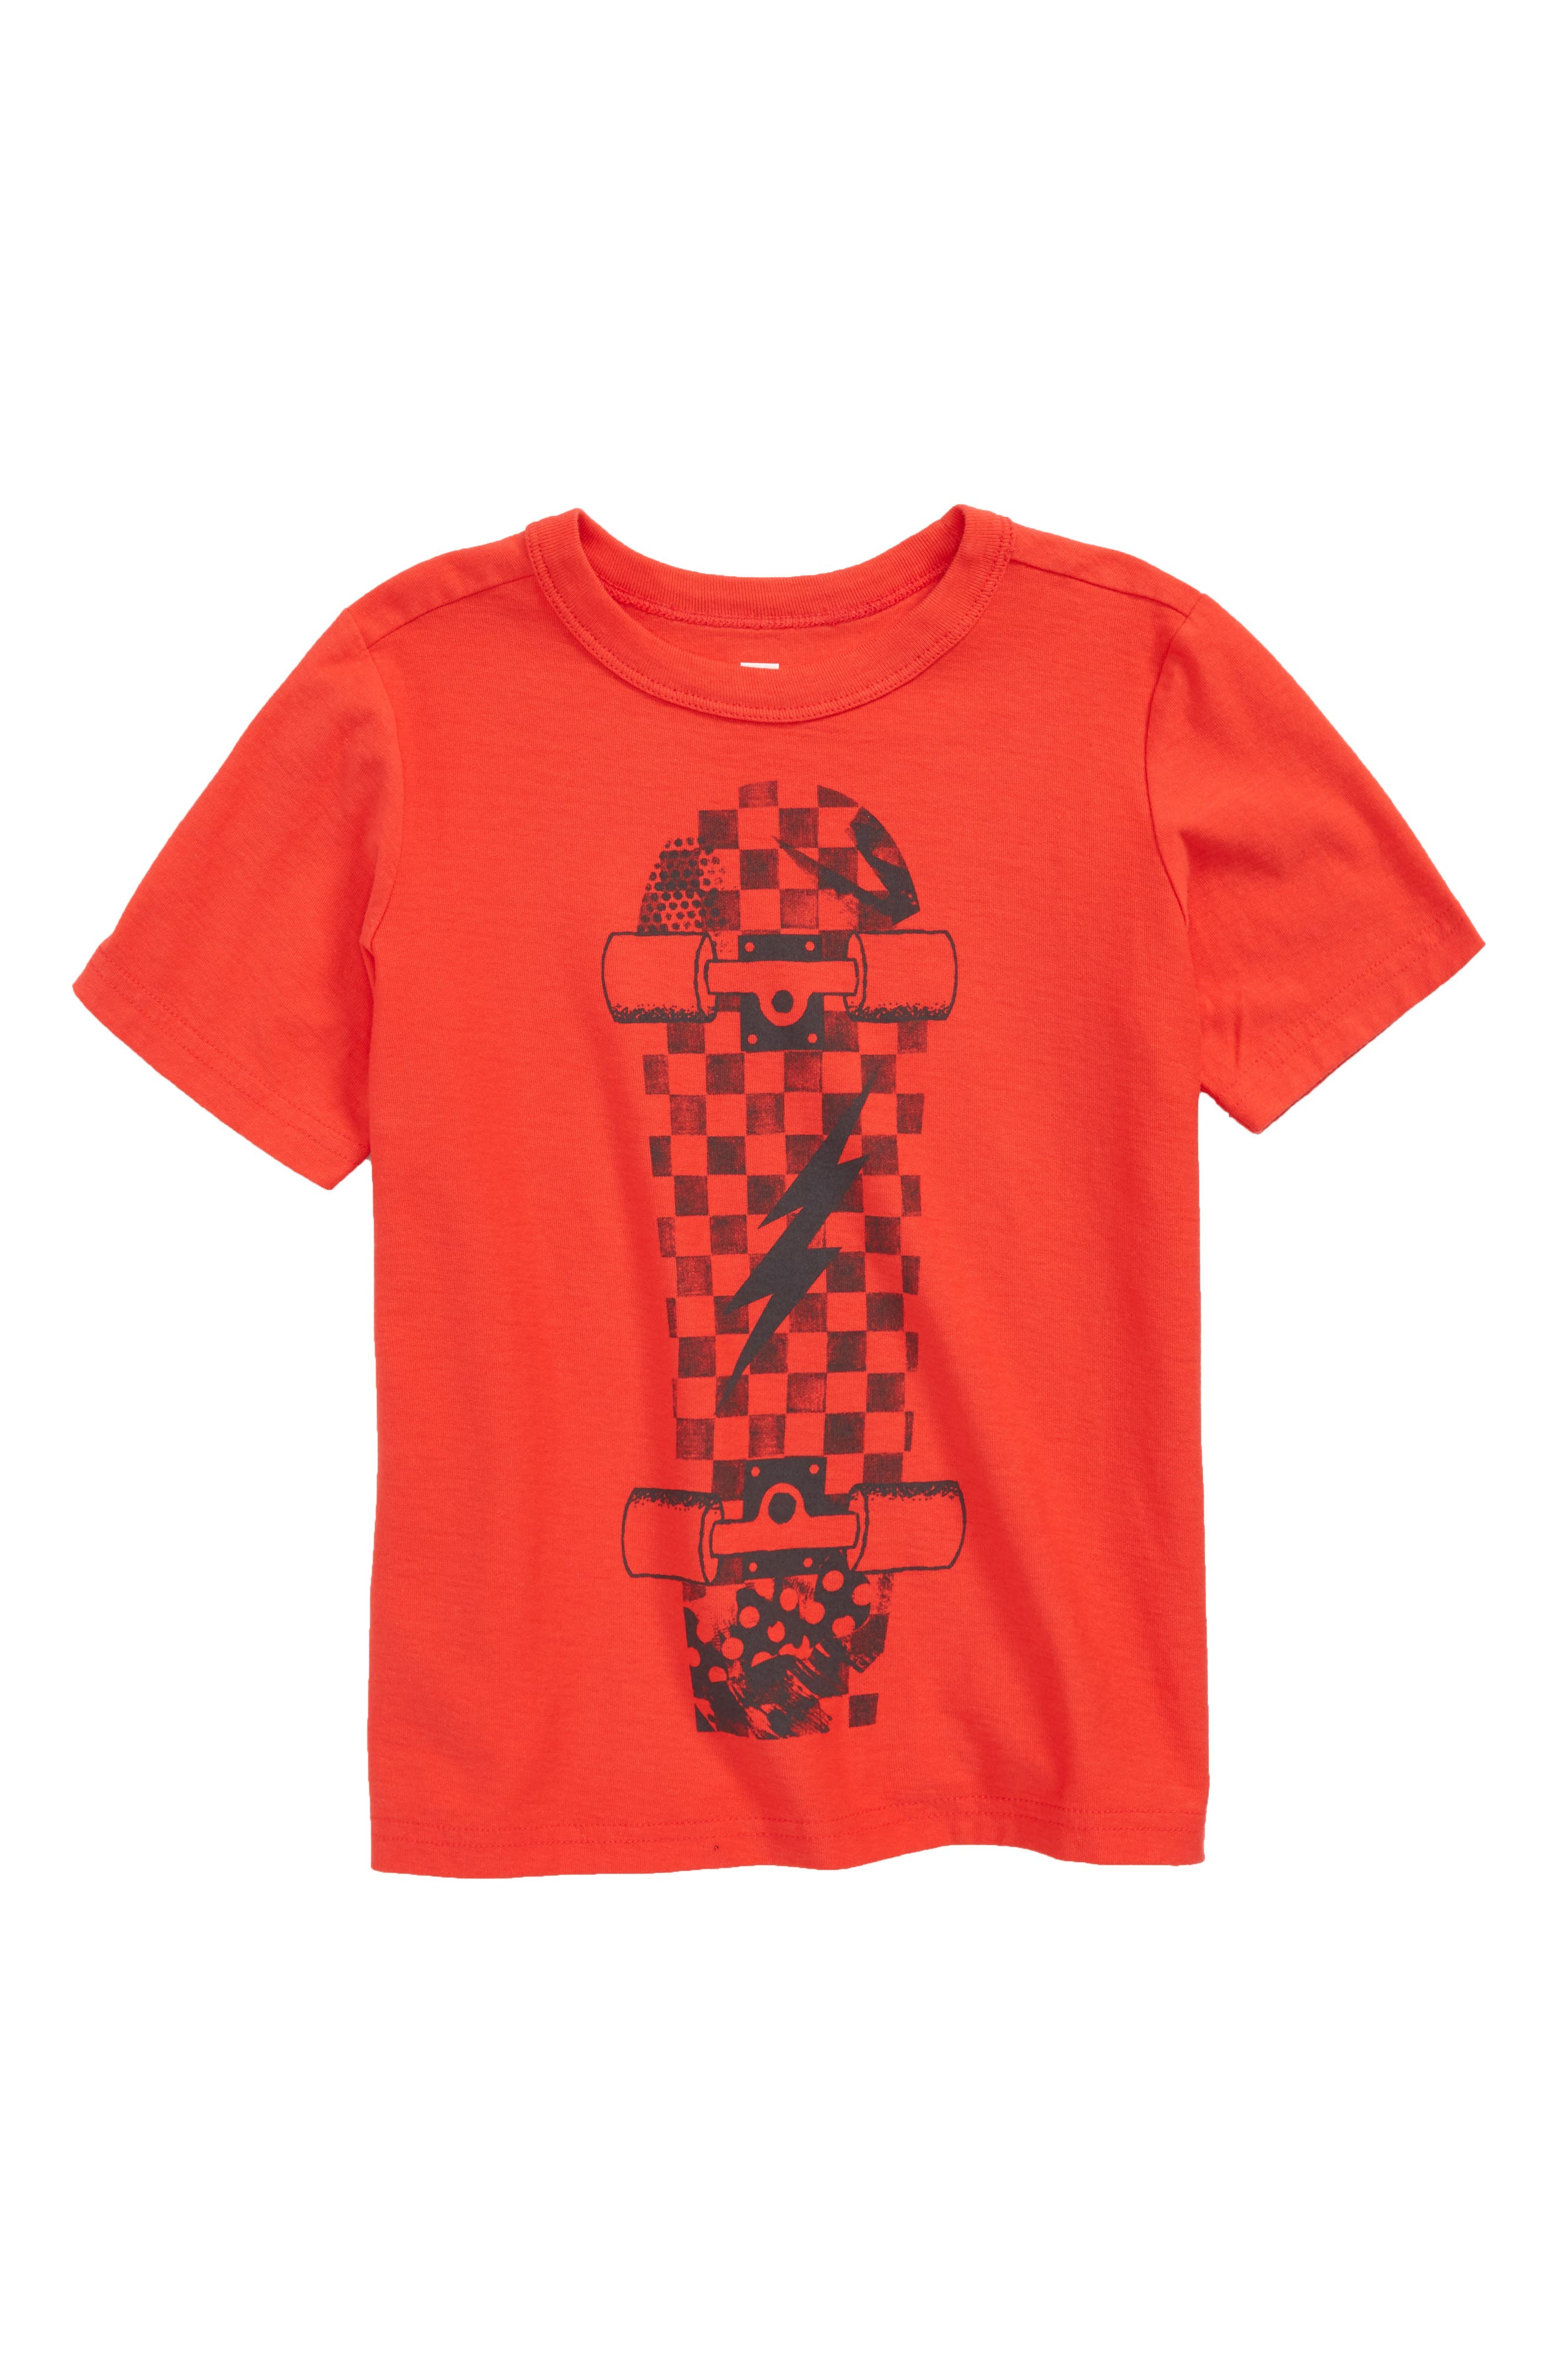 Skateboard T-Shirt,                             Main thumbnail 1, color,                             641